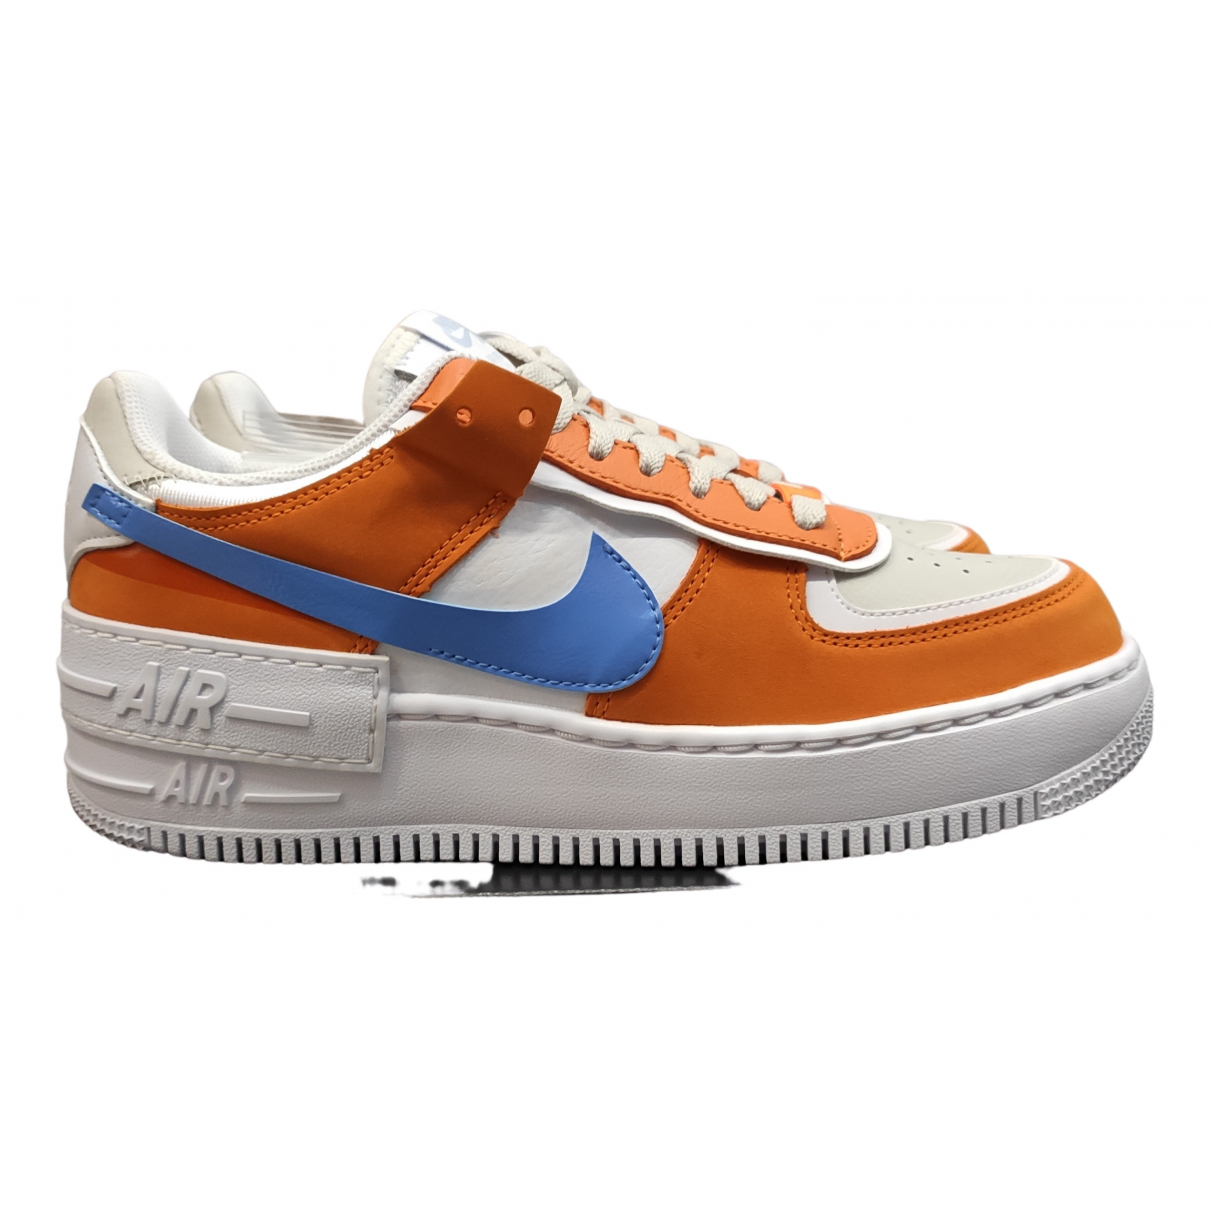 Nike - Baskets Air Force 1 pour femme en suede - orange